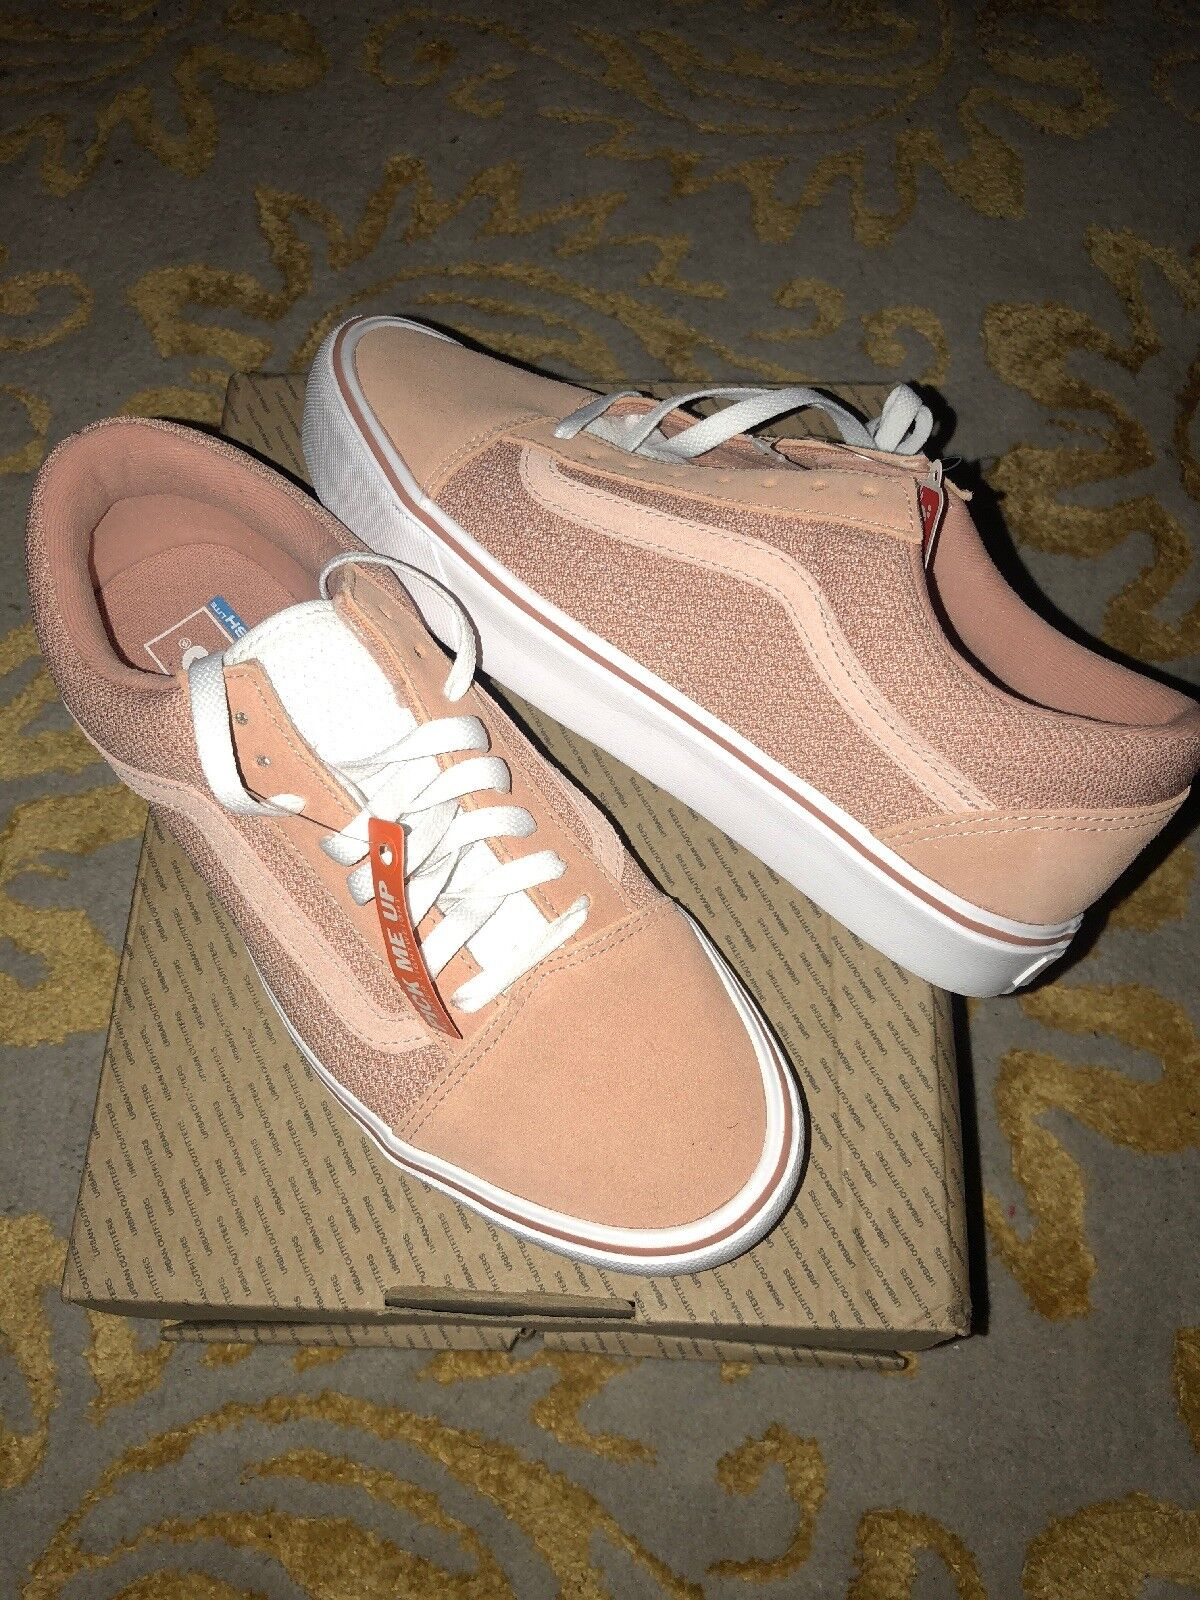 DS NEW Vans Old Skool Lite Light Pink Sz M 9.5 Free Ship